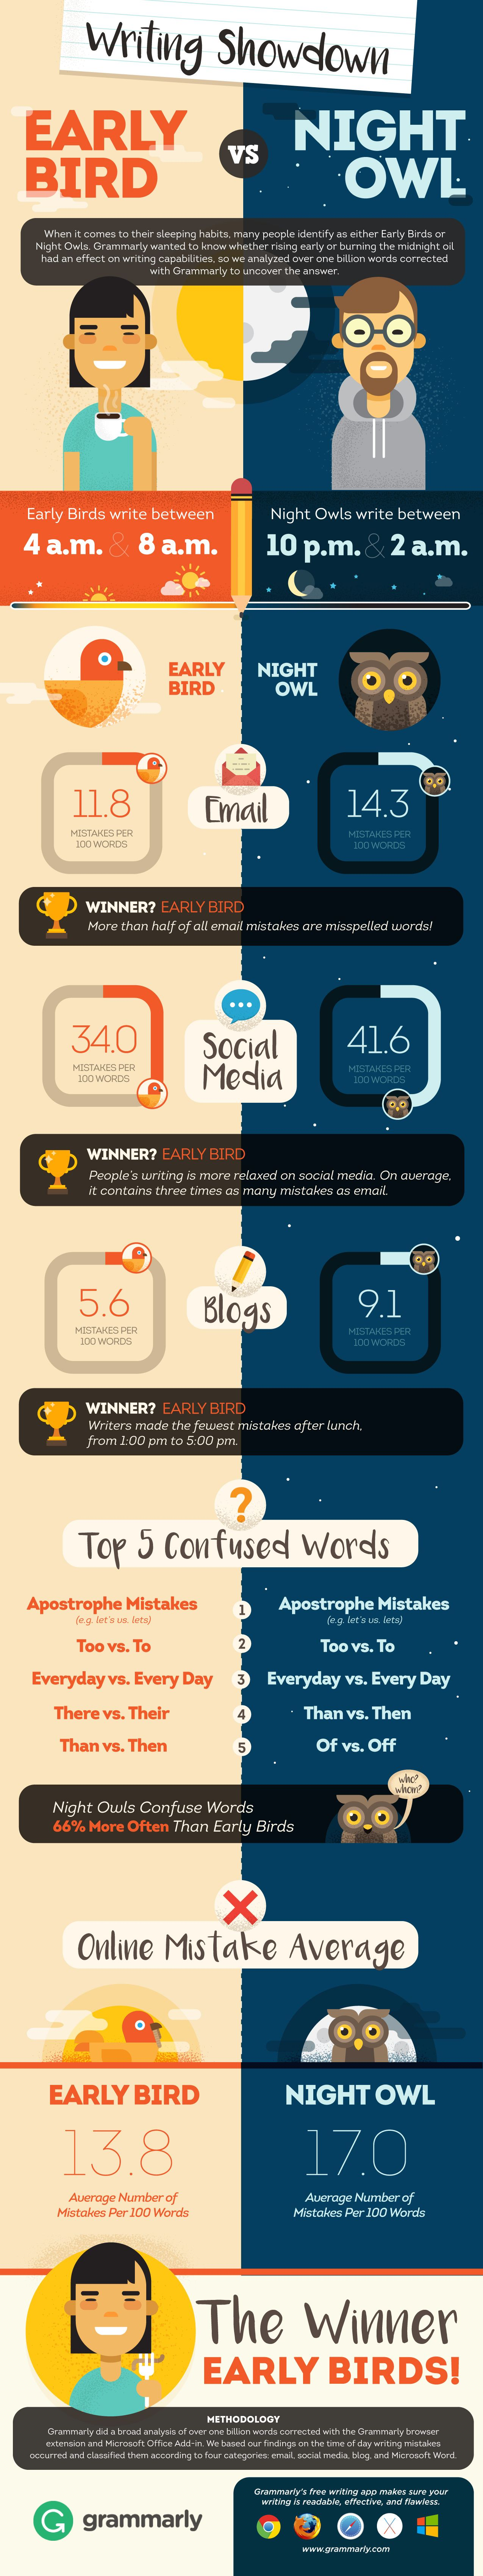 Early Bird Vs Night Owl #Infographic